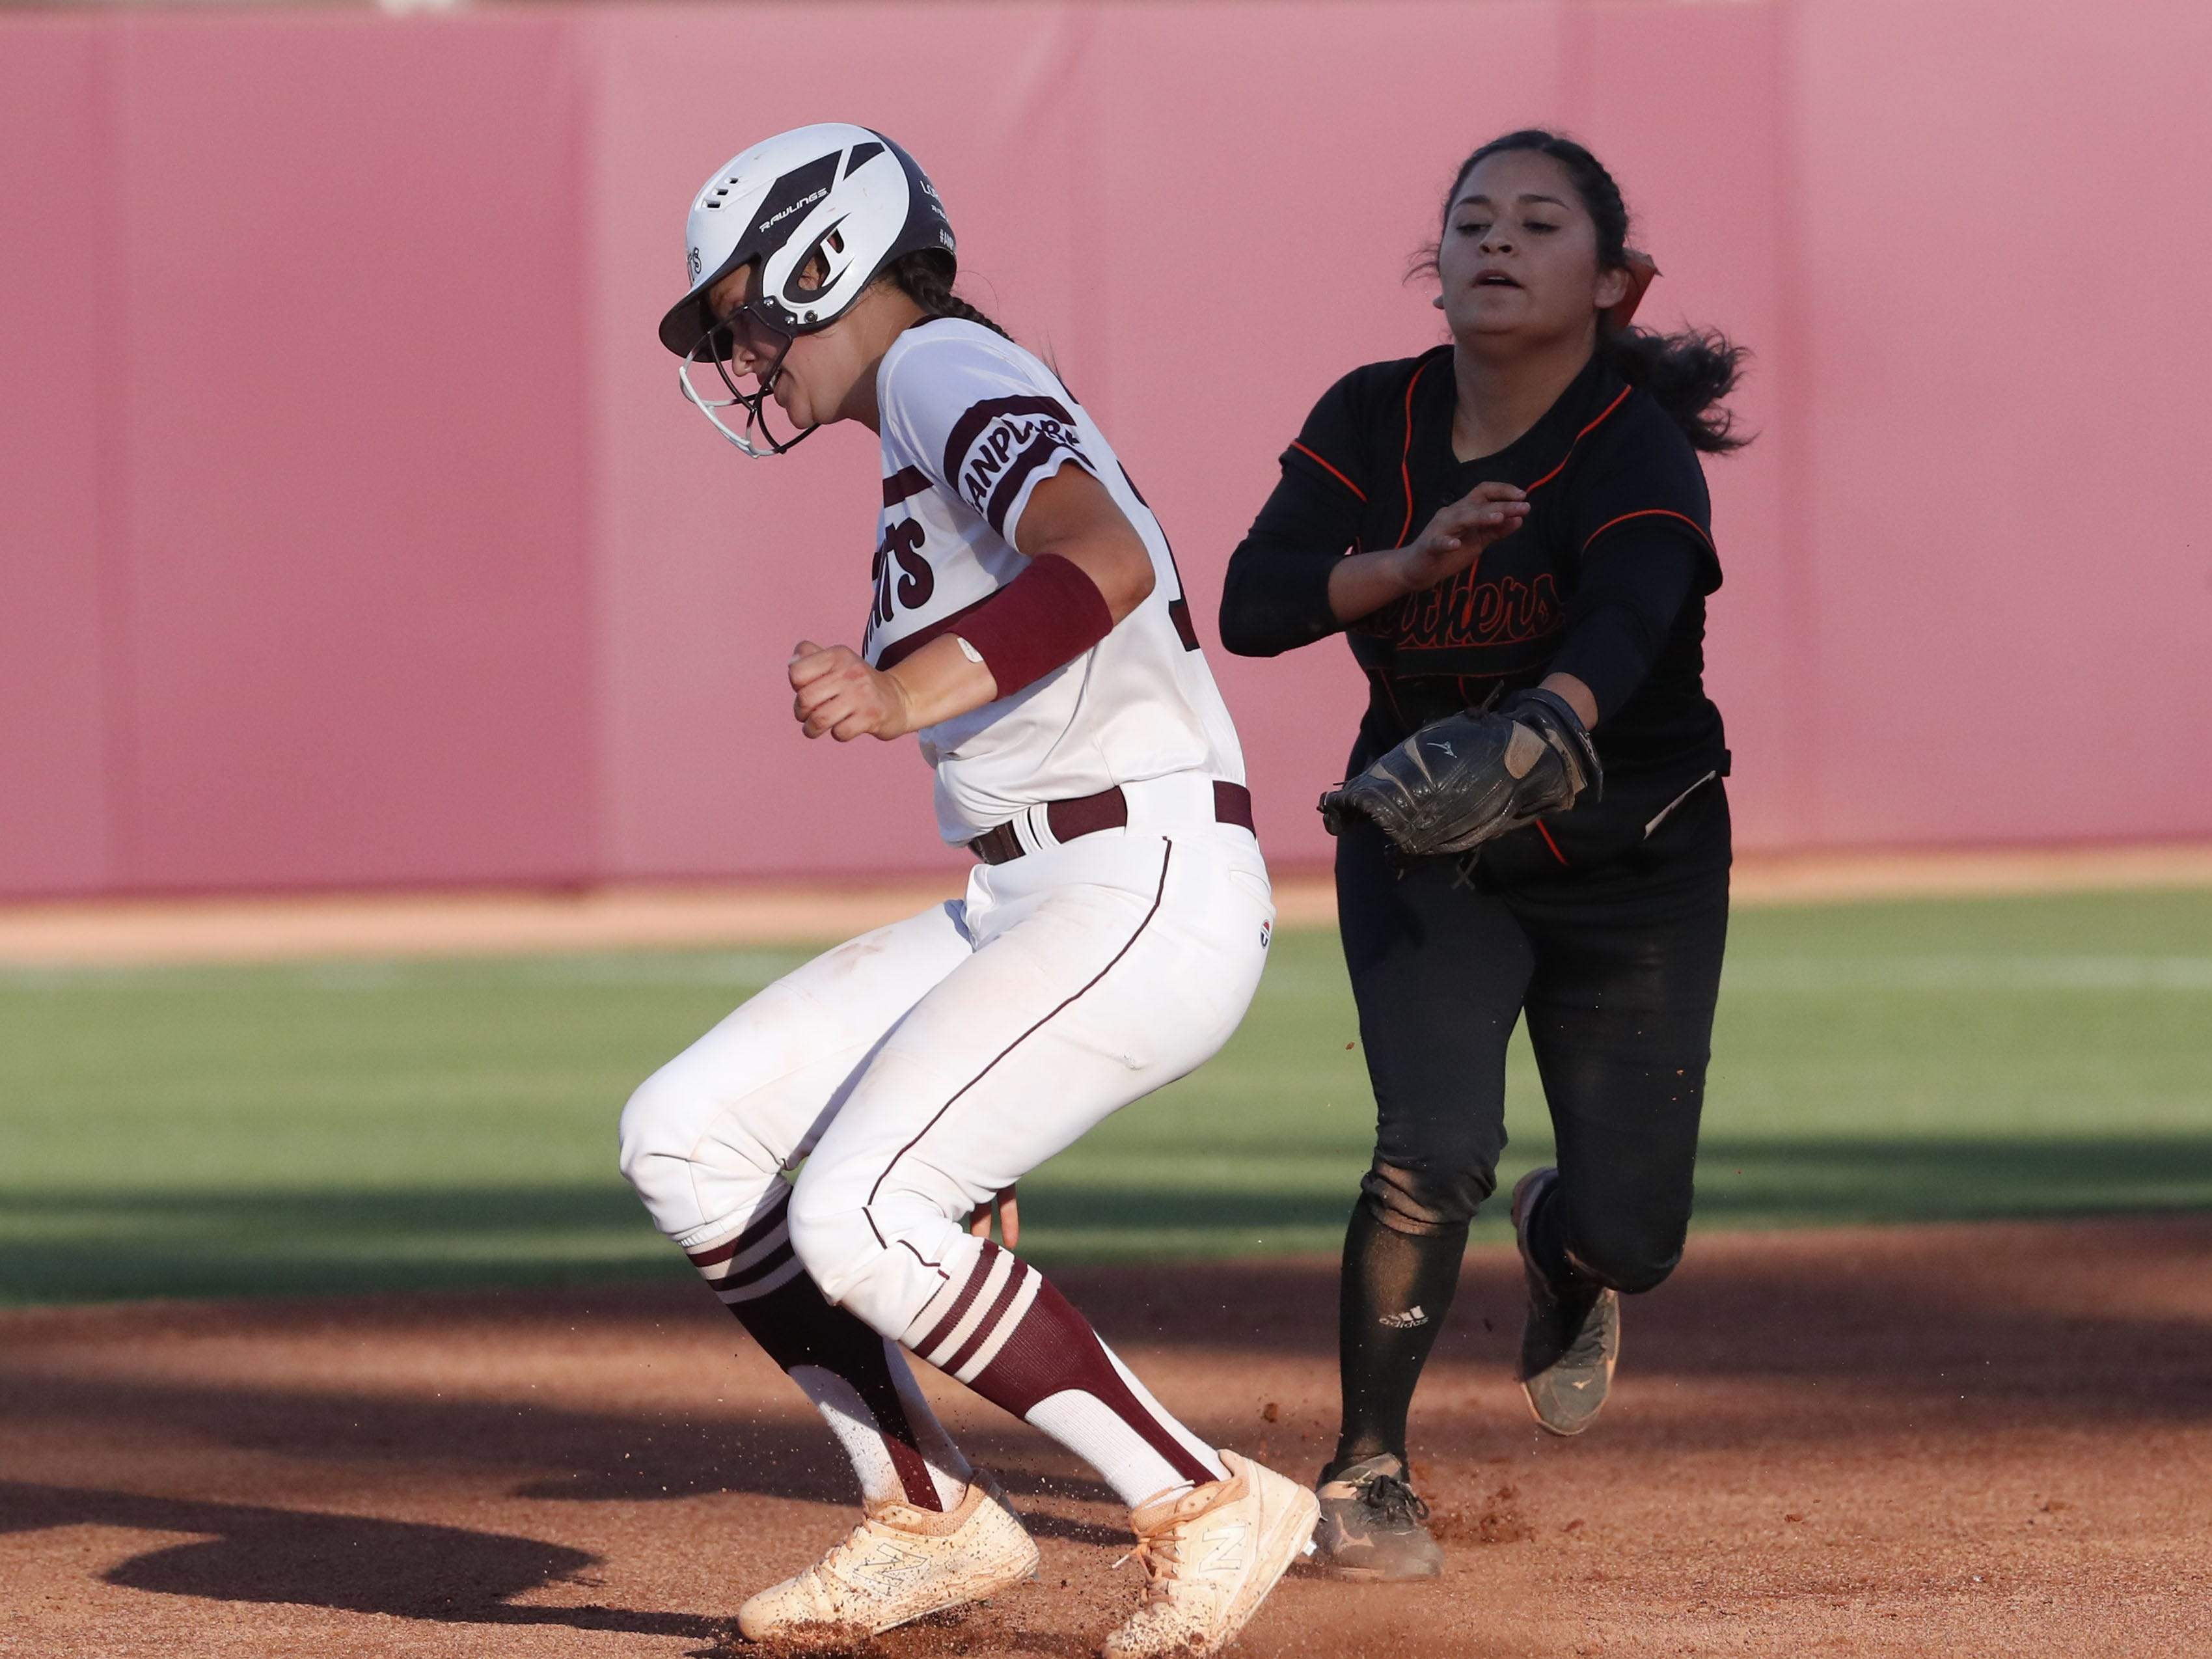 Ray catcher Tara Loroña (13) runs around the tag by Superior shortstop Anisah Cardenas (3) during the 1A softball state championship game in Tempe May 6, 2019.